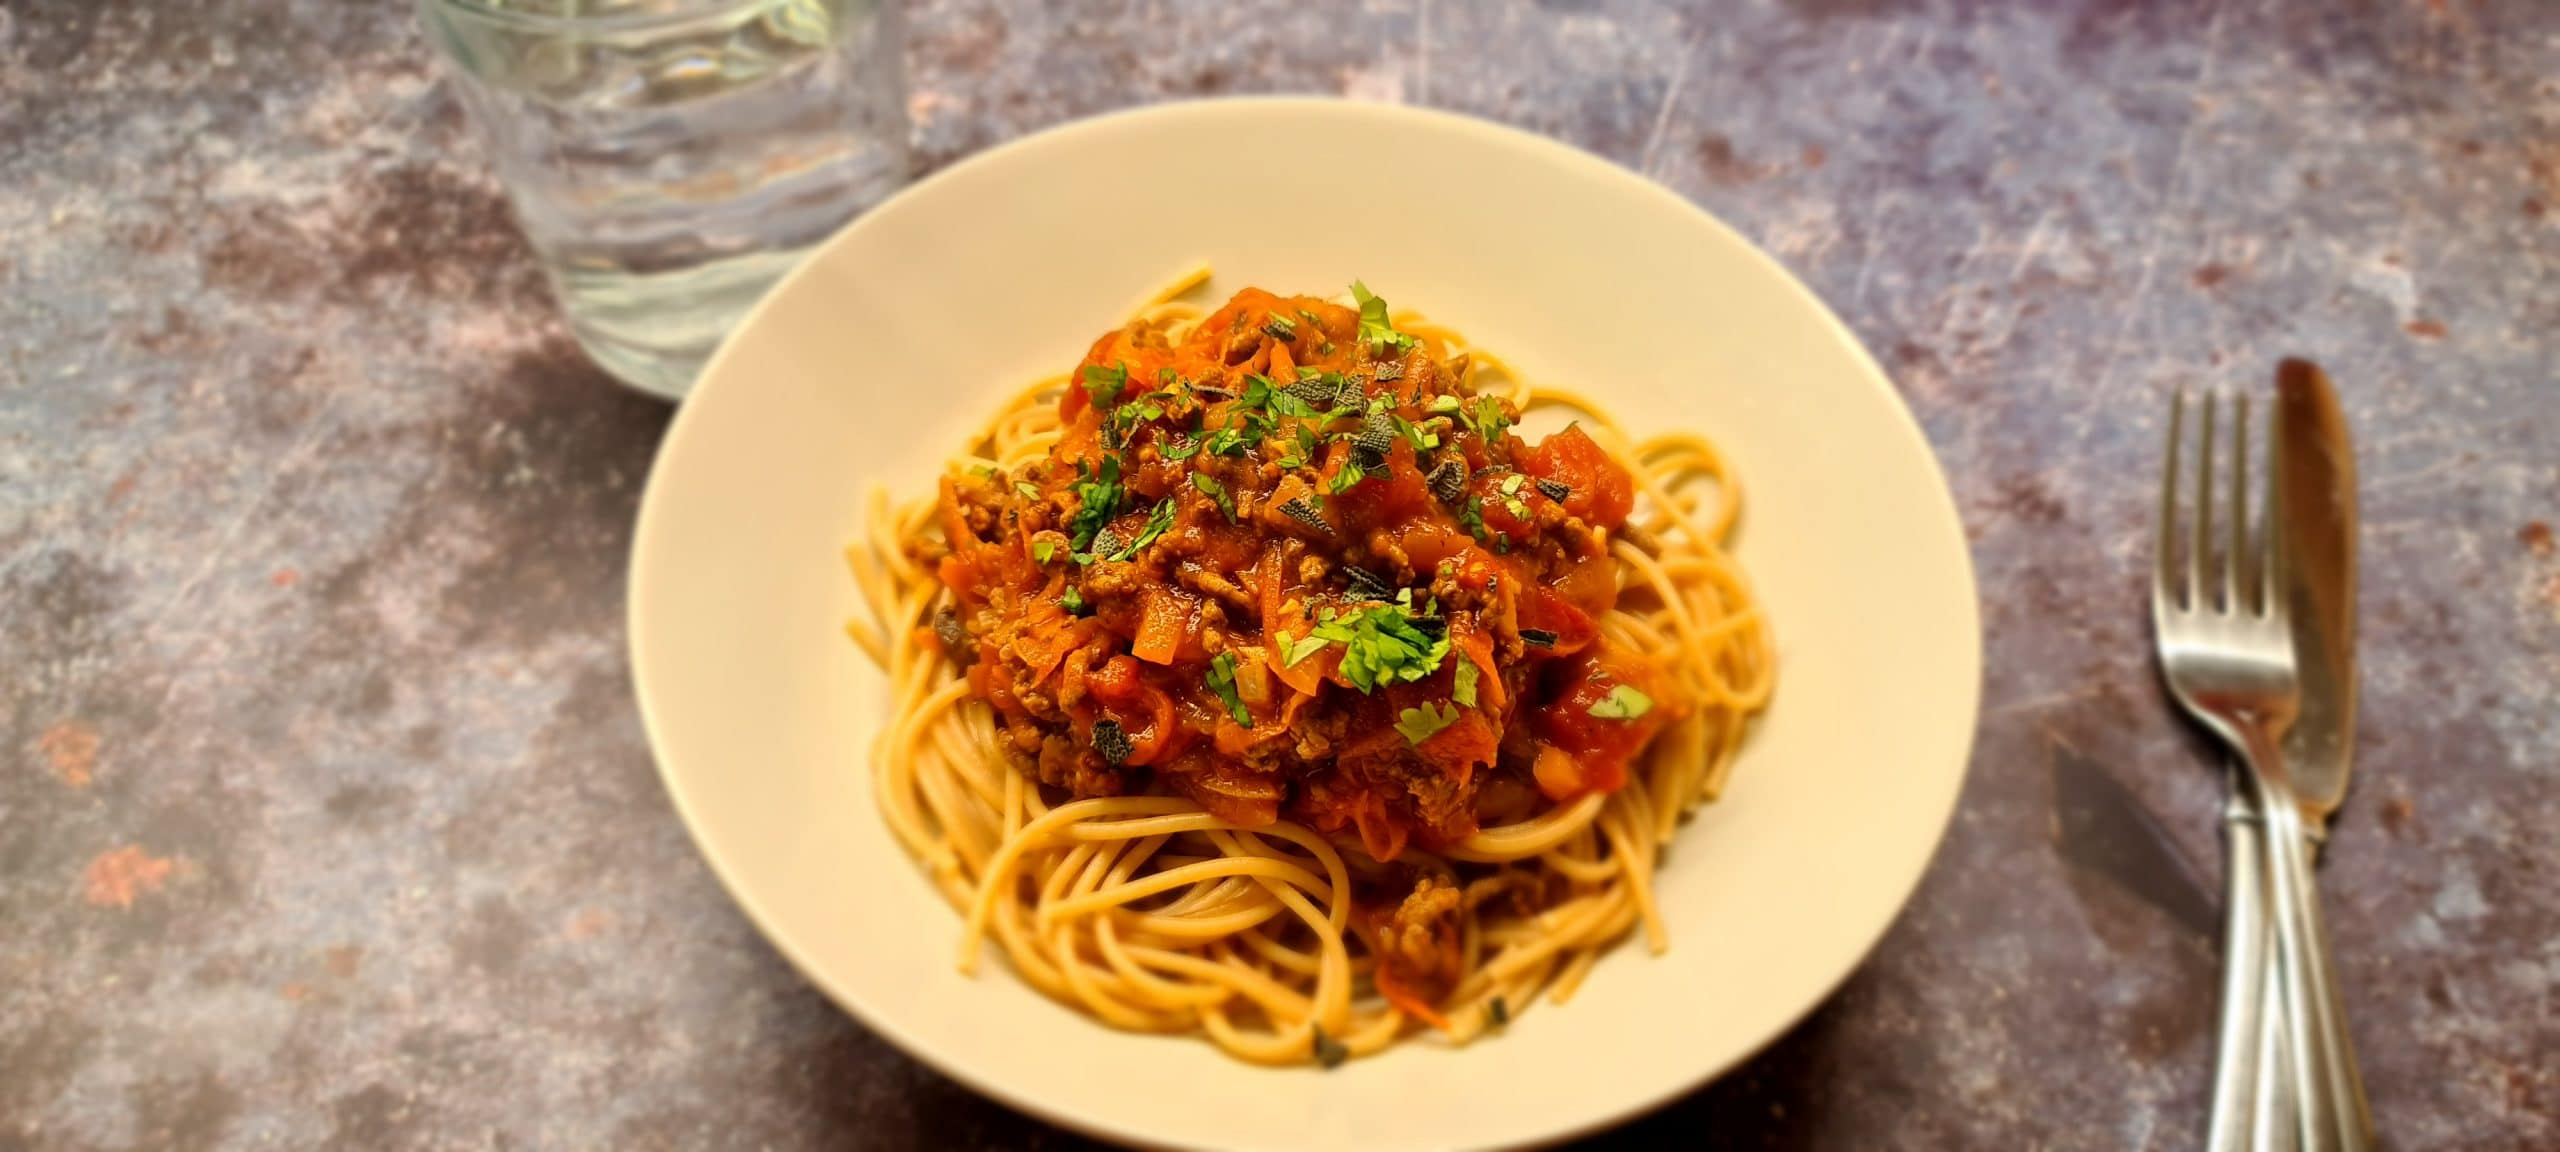 You are currently viewing Healthy Spaghetti Bolognese